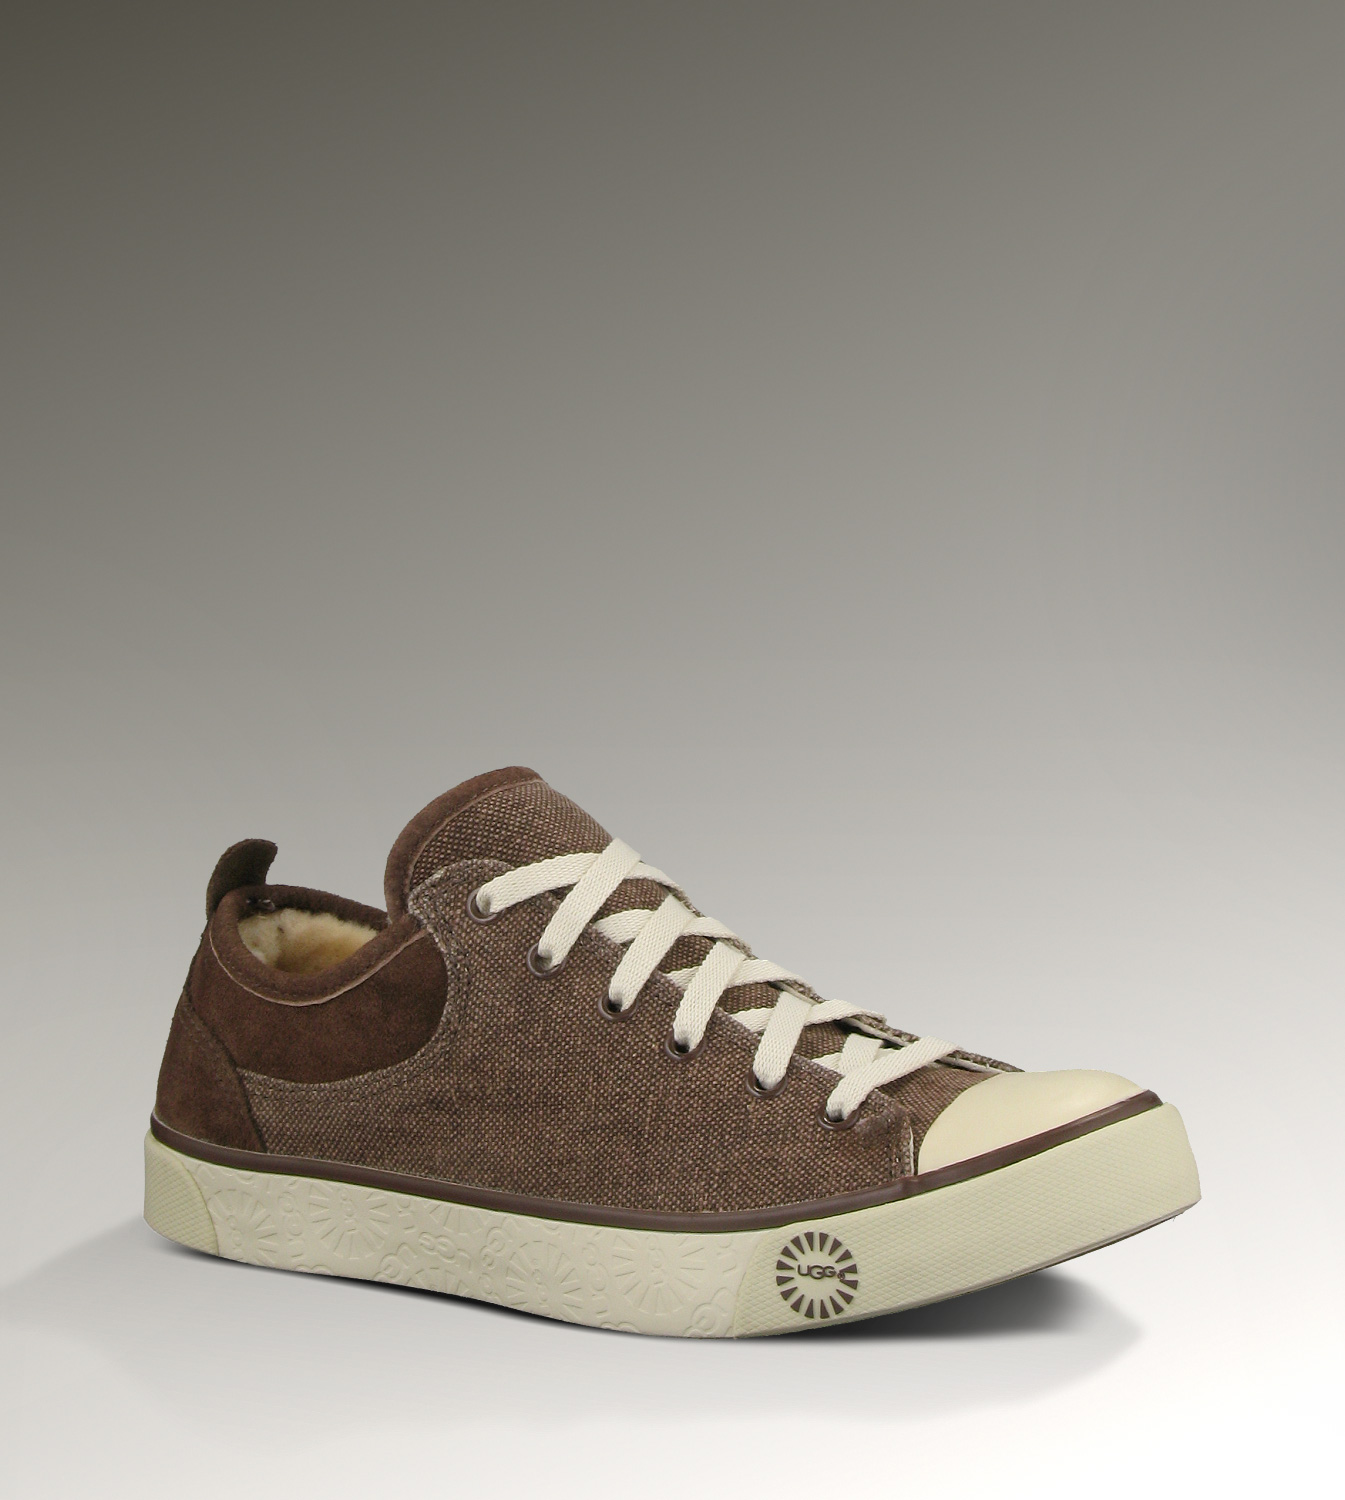 UGG Evera Canvas 1000452 Chocolate Sneakers